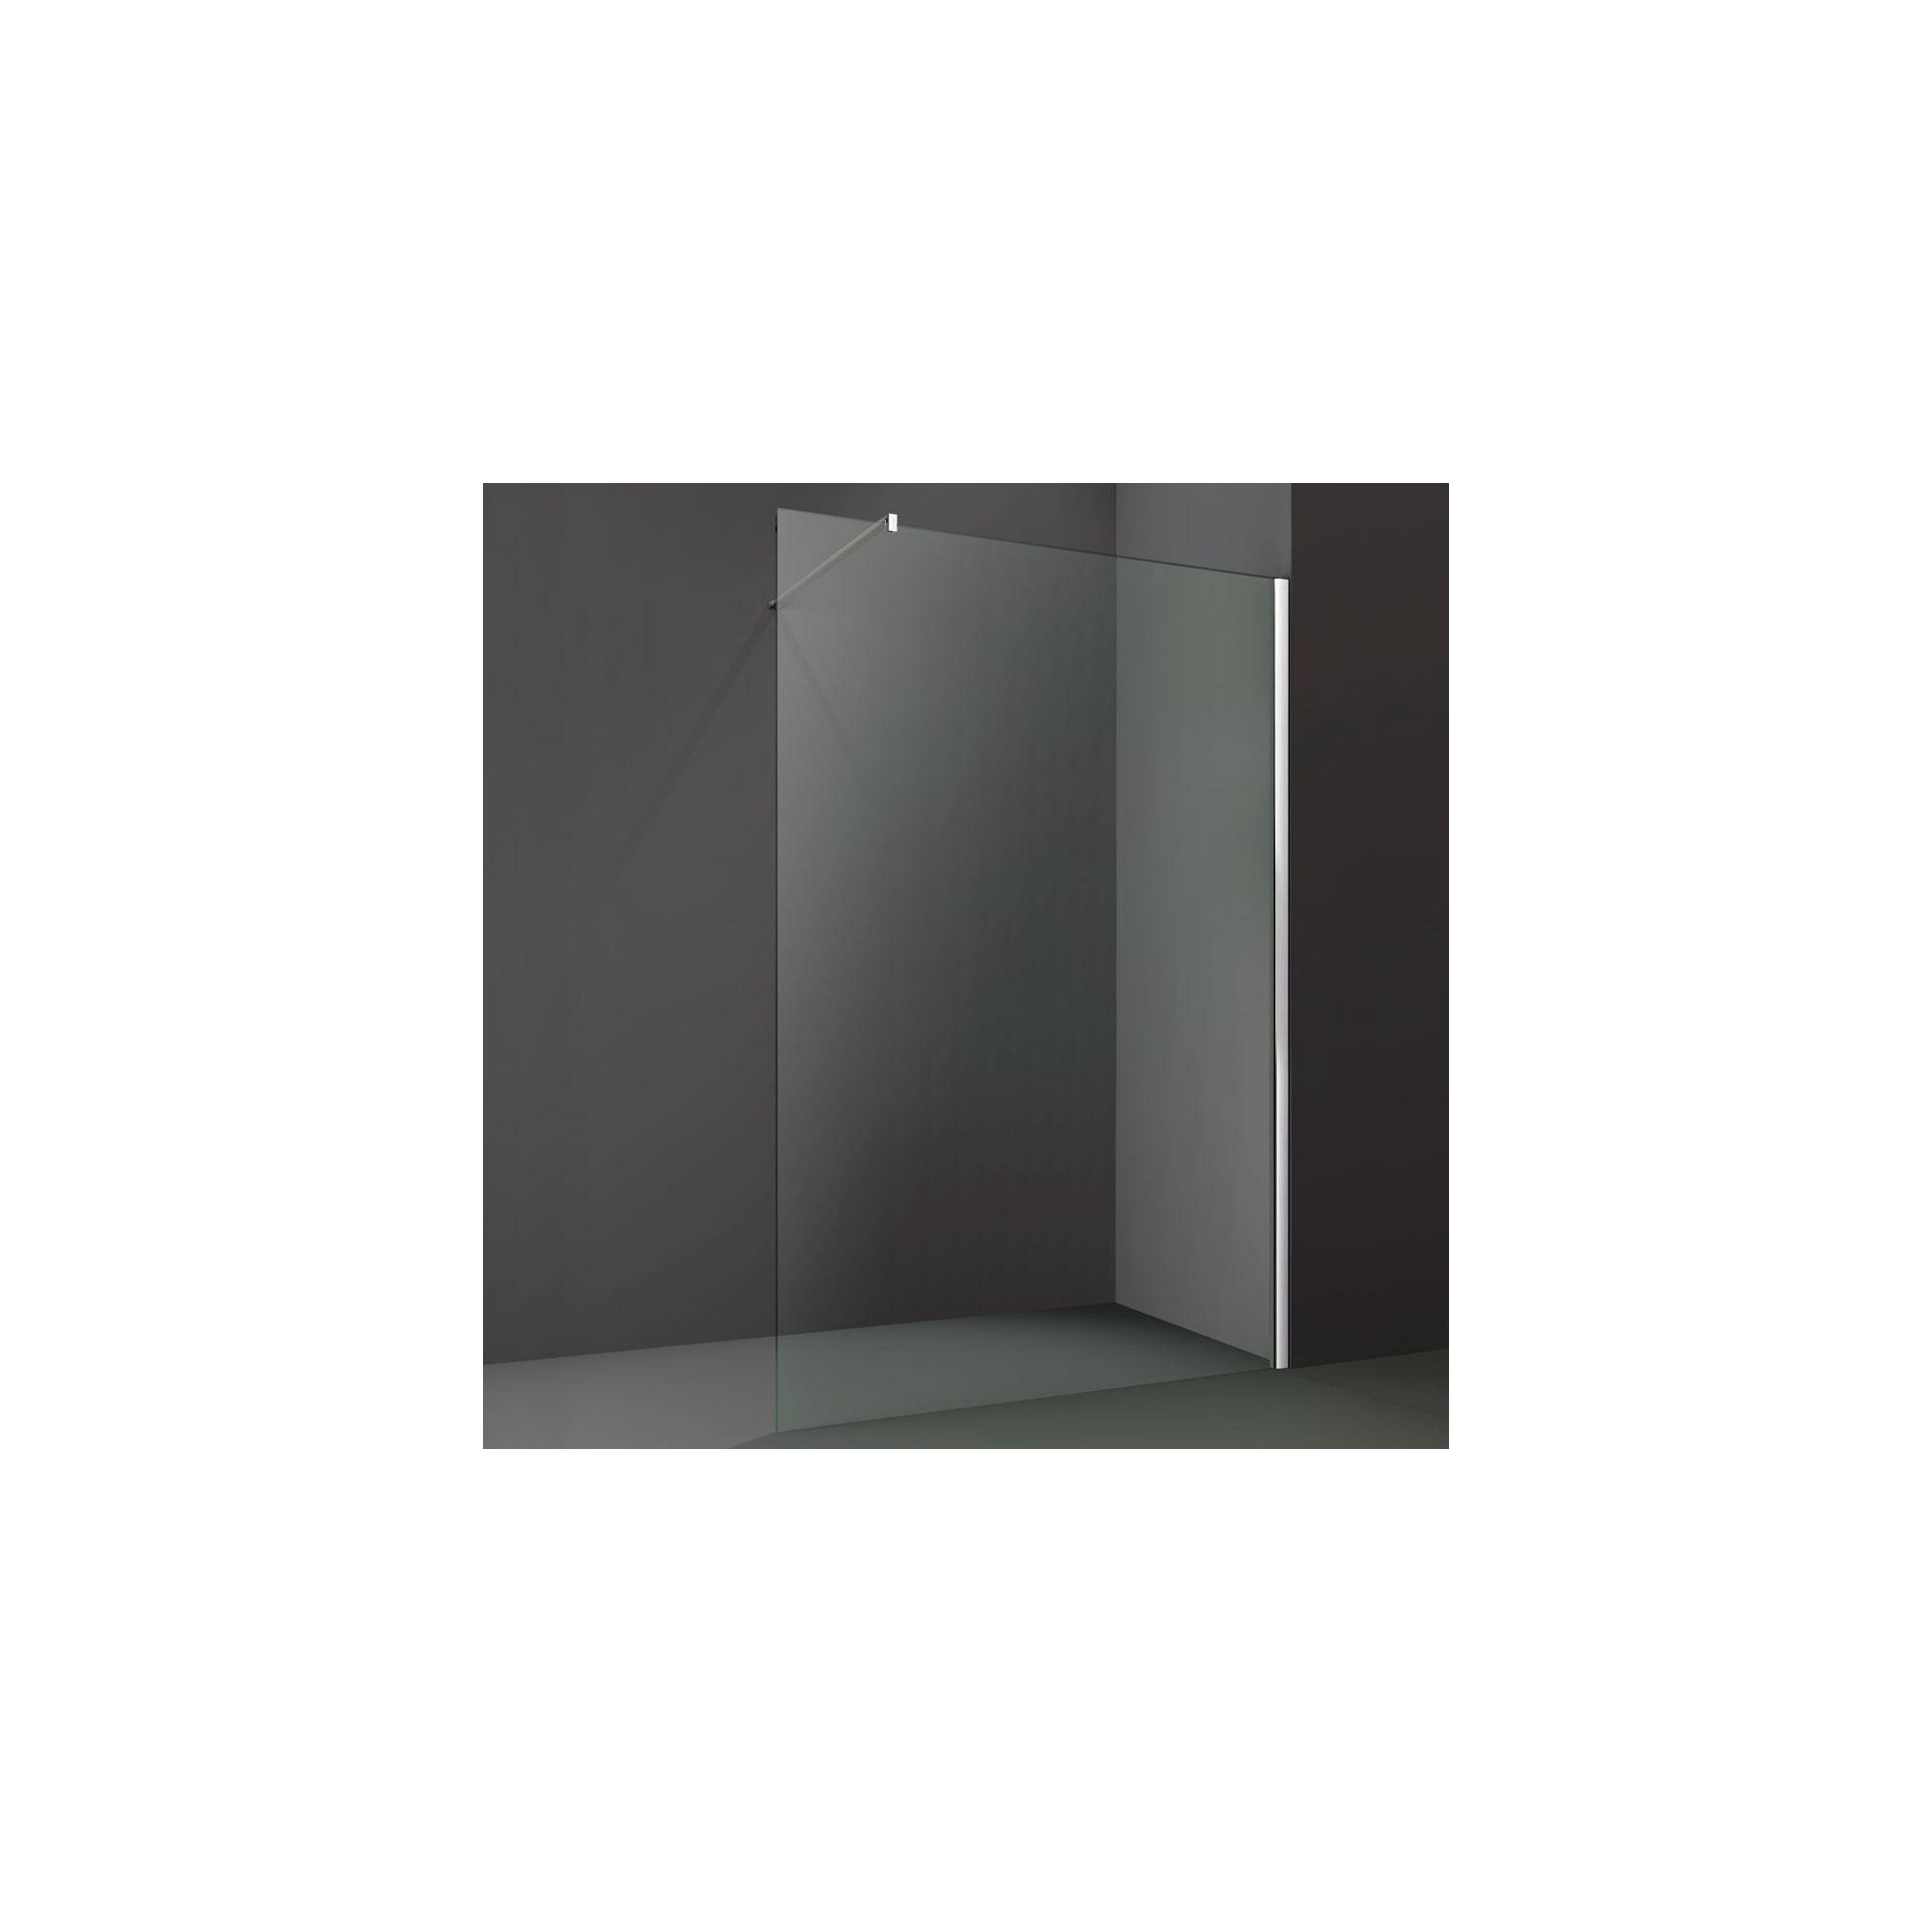 Merlyn Series 8 Wet Room Glass Shower Panel, 1200mm Wide, 8mm Glass at Tescos Direct